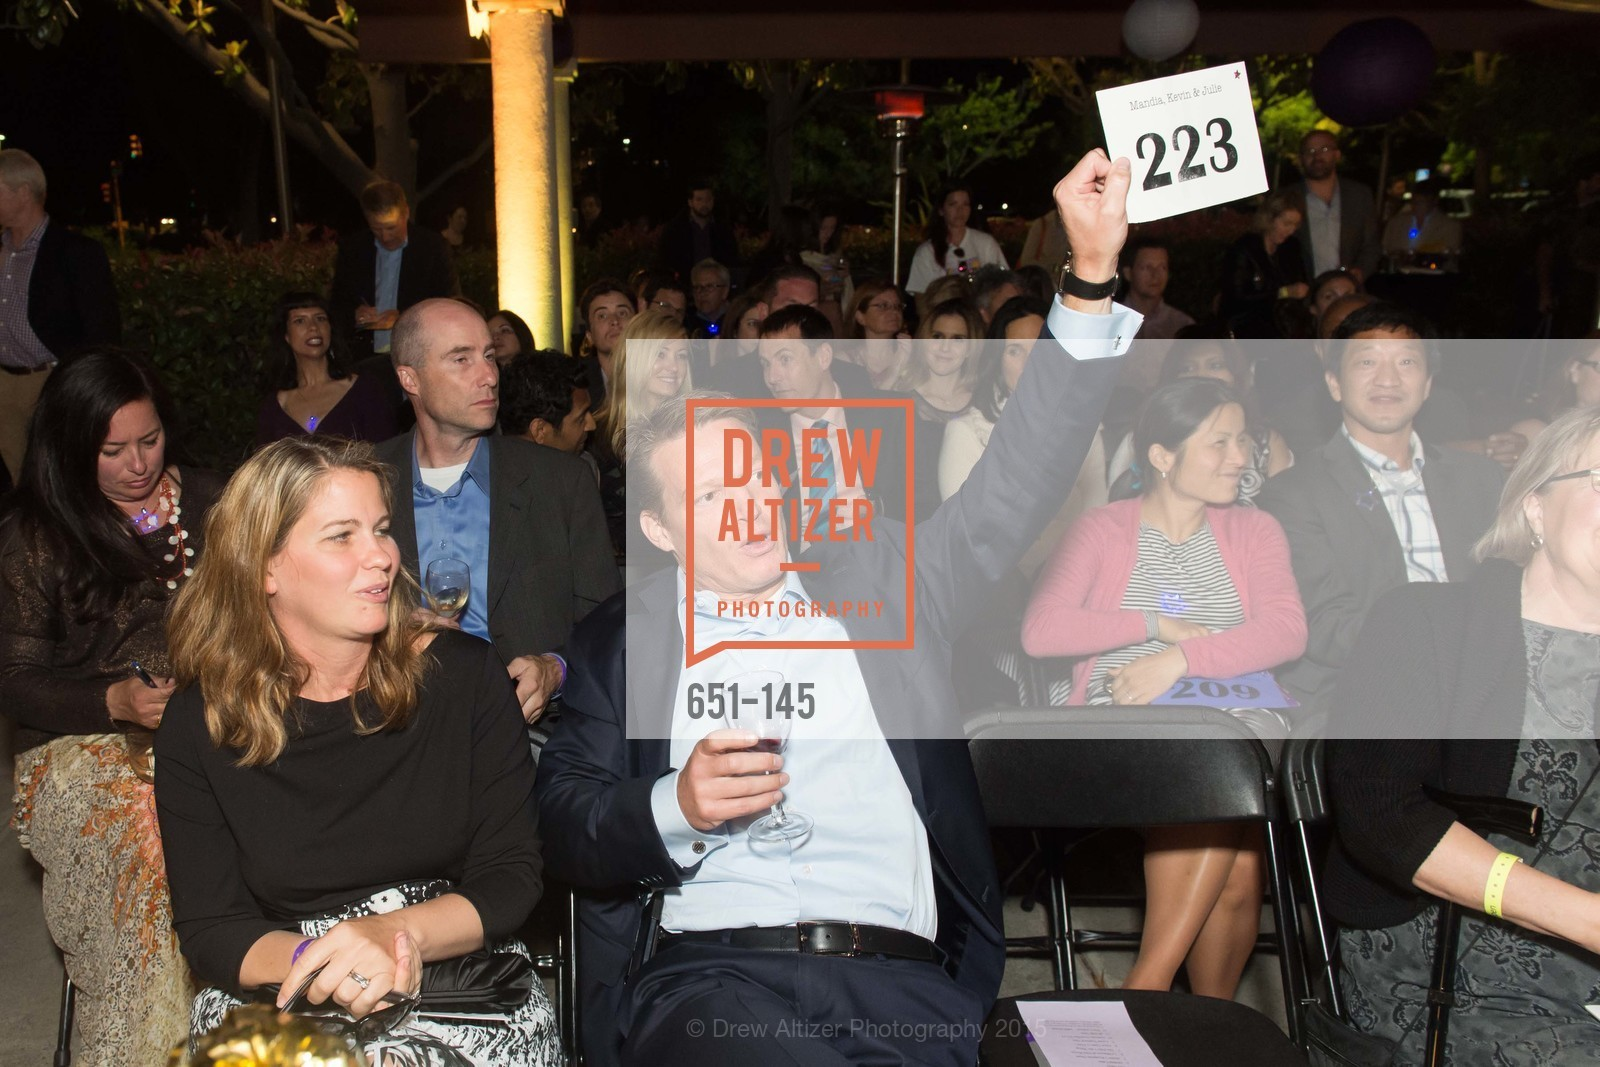 Extras, DREAMS HAPPEN: Playhouse Auction and Gala, June 5th, 2015, Photo,Drew Altizer, Drew Altizer Photography, full-service event agency, private events, San Francisco photographer, photographer California